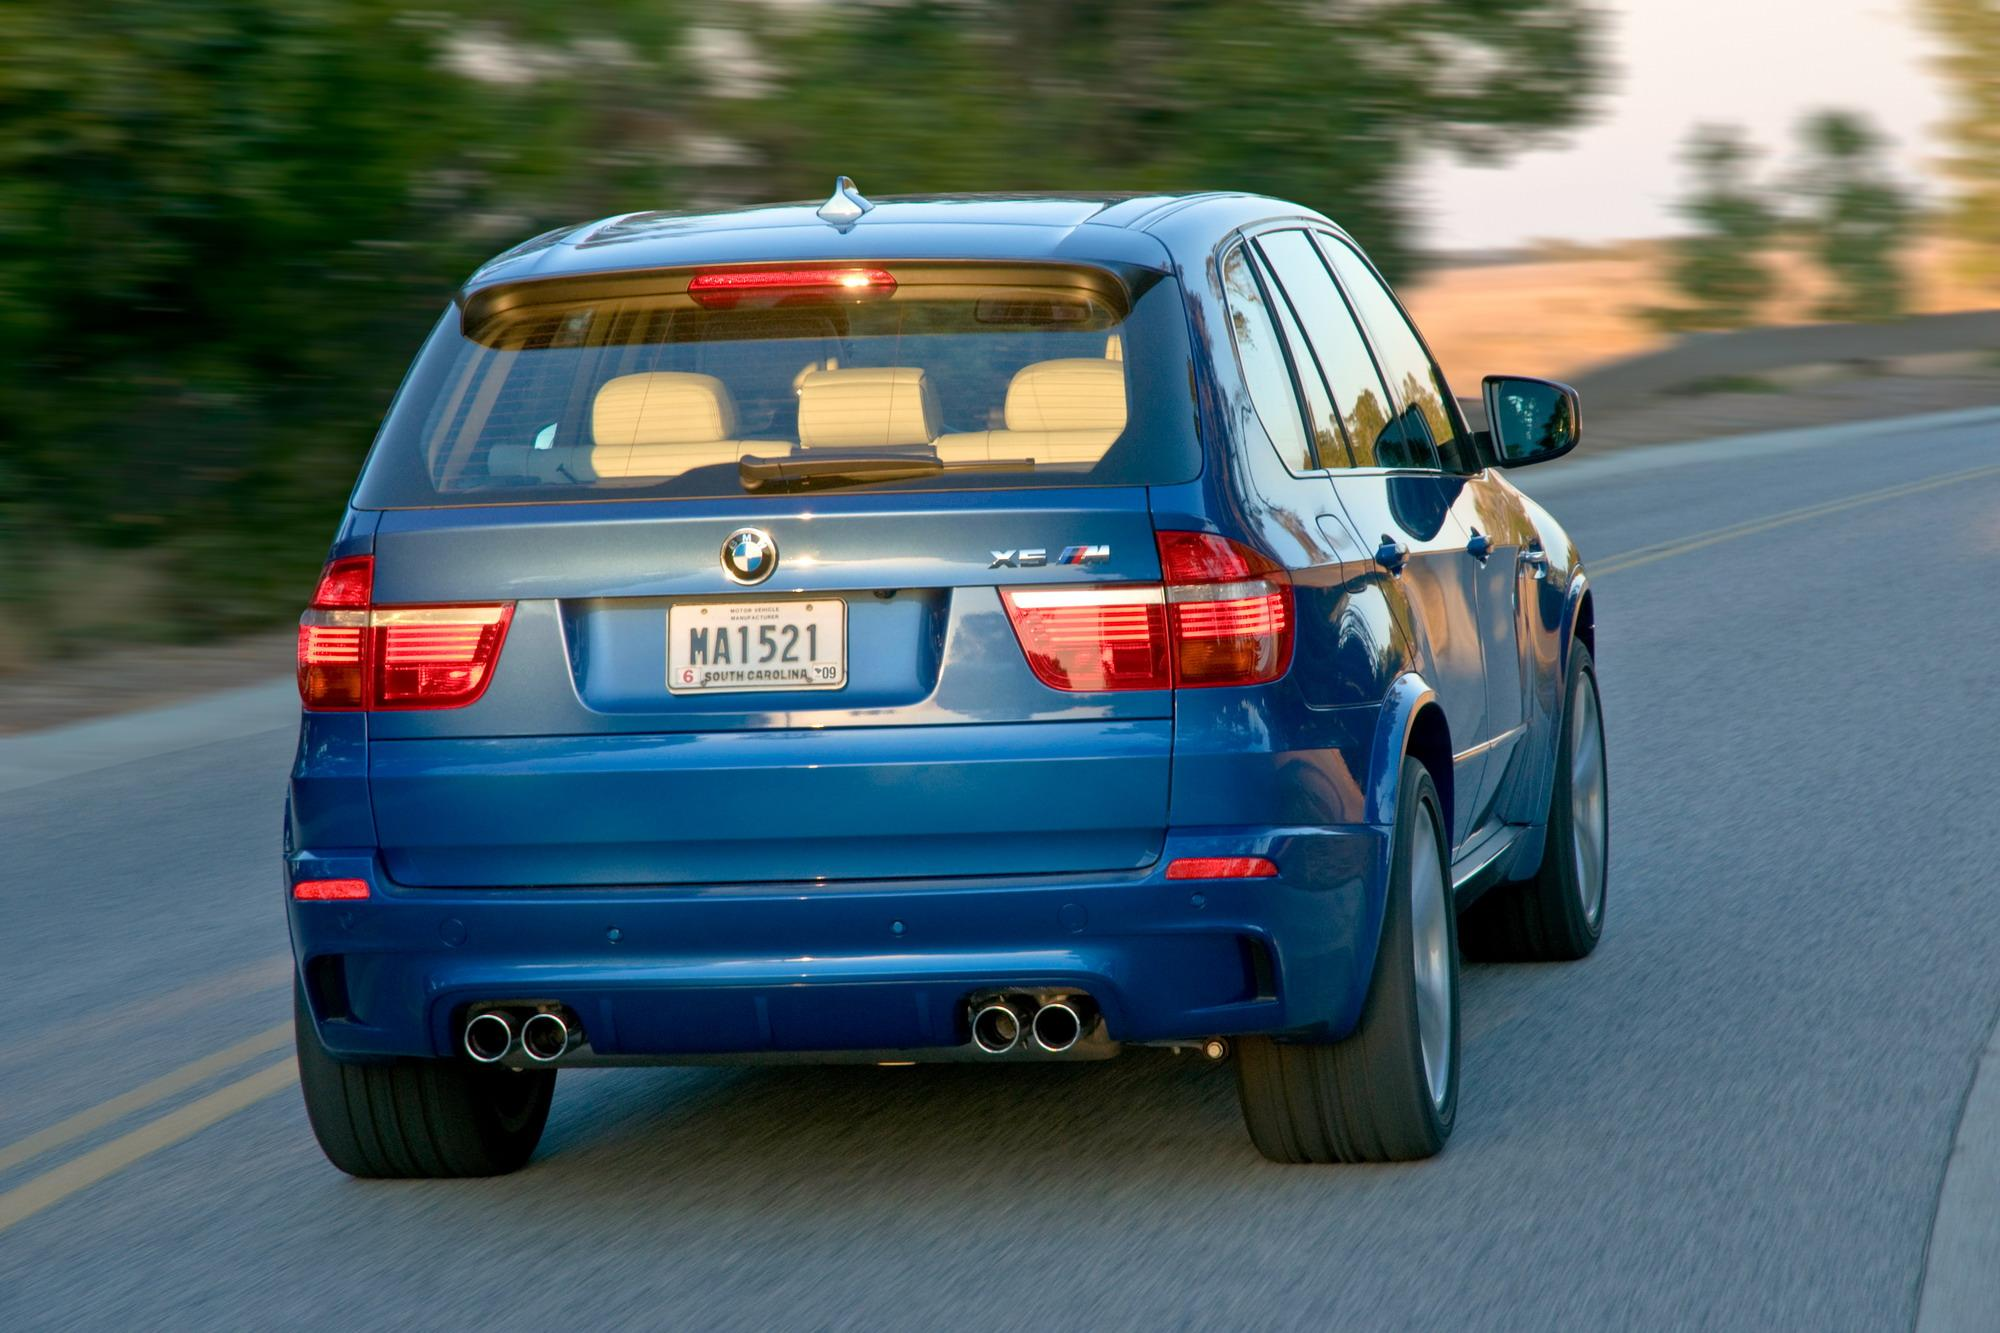 2010 BMW X5 M Review - Top Speed